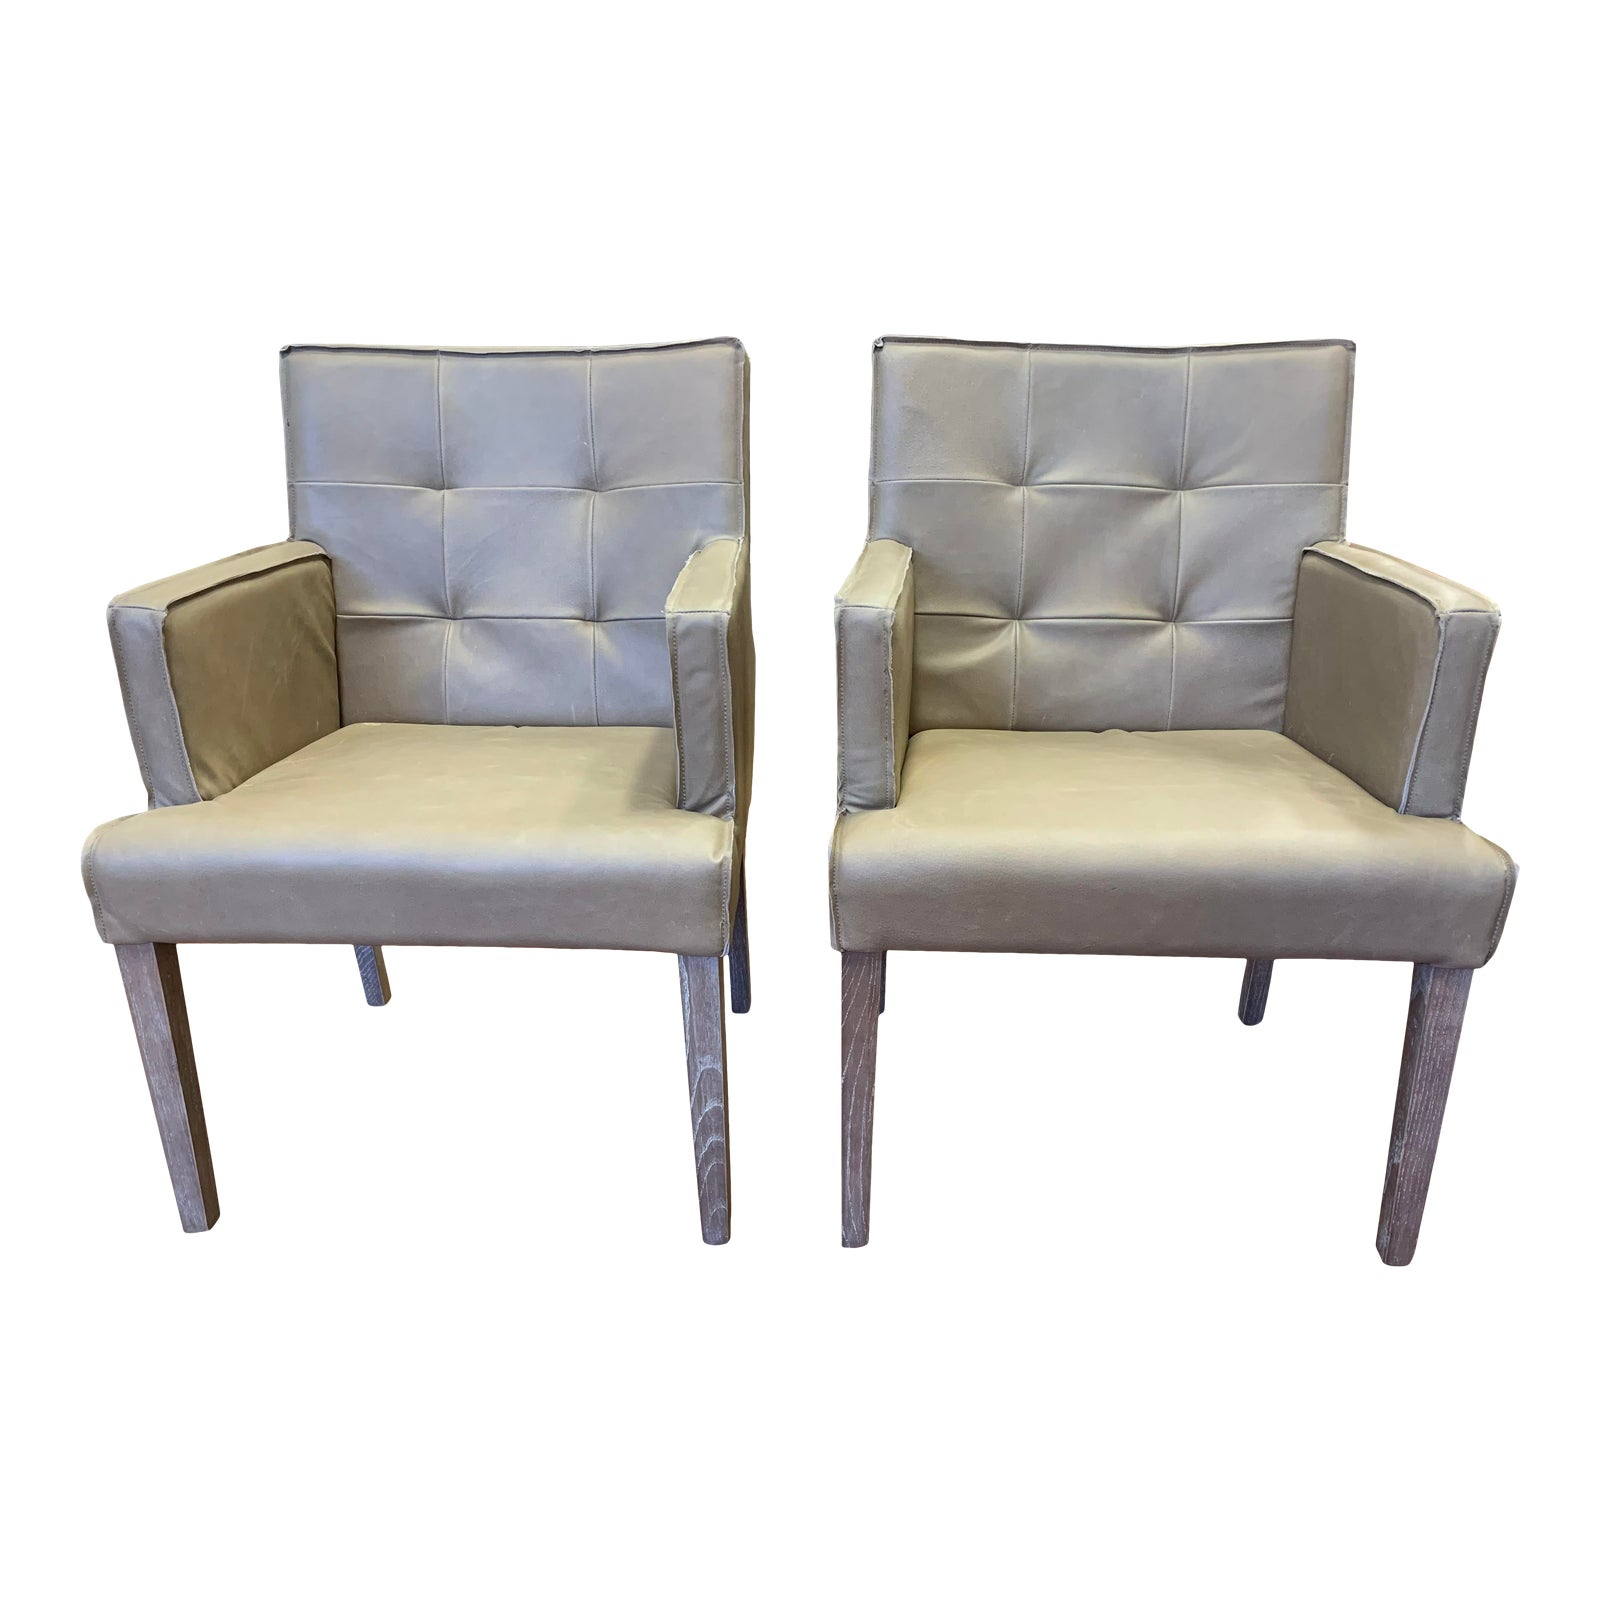 Furniture Classics Elroy Leather Arm Chairs A Pair Design Plus Gallery